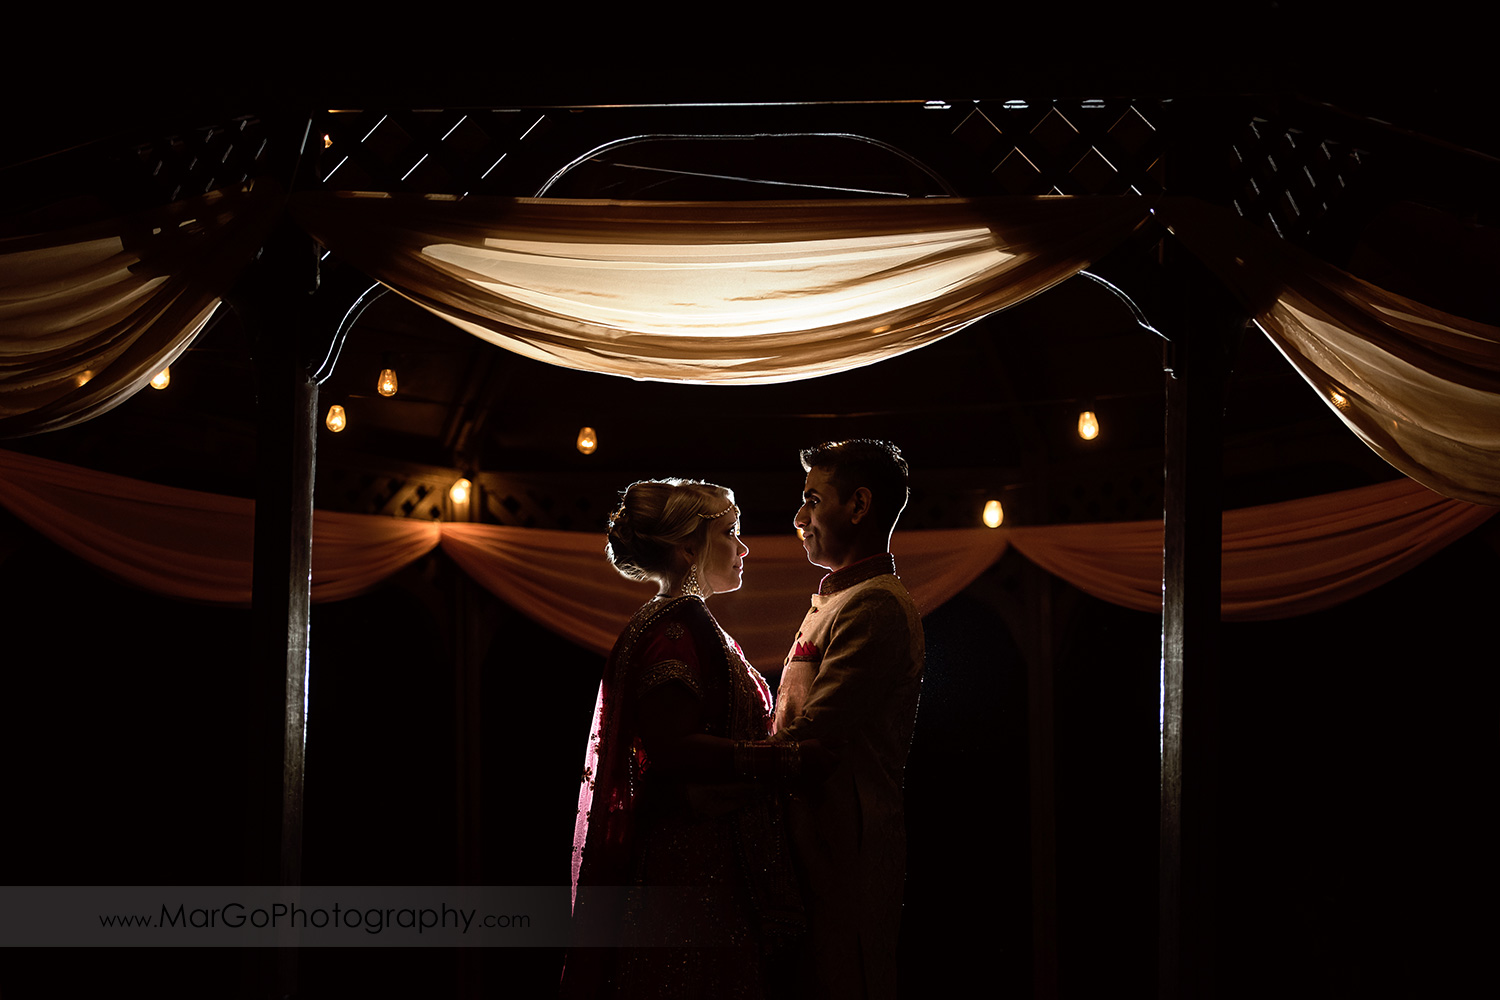 night shot of Indian bride and groom under gazebo at Elliston Vineyards in Sunol